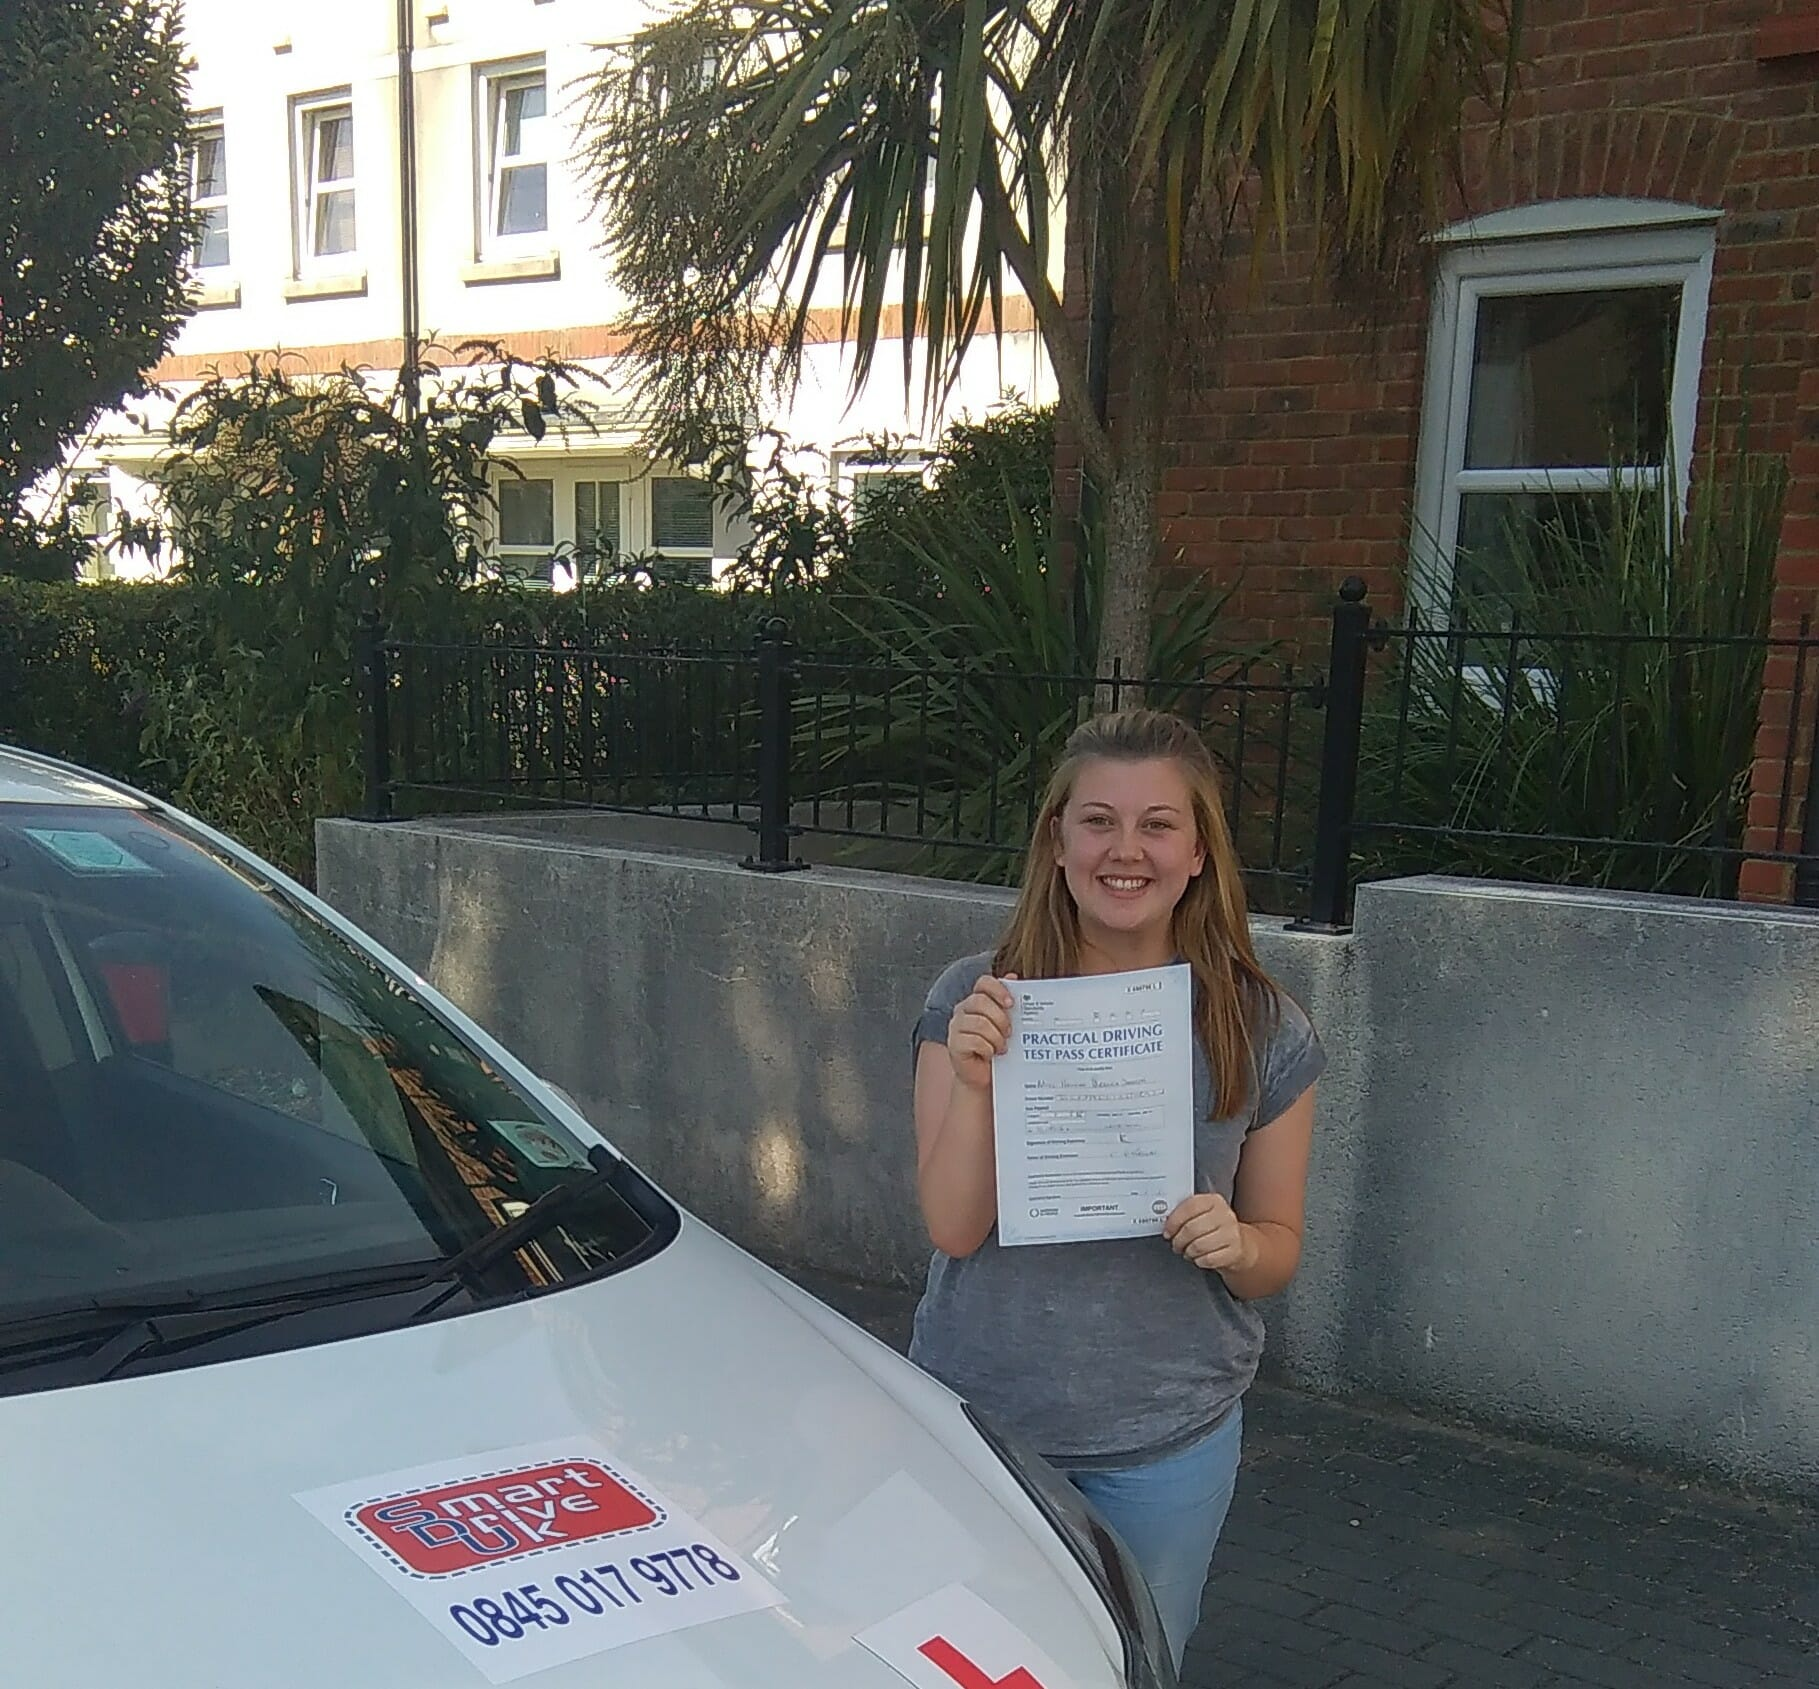 Congratulations to Hannah in Worthing